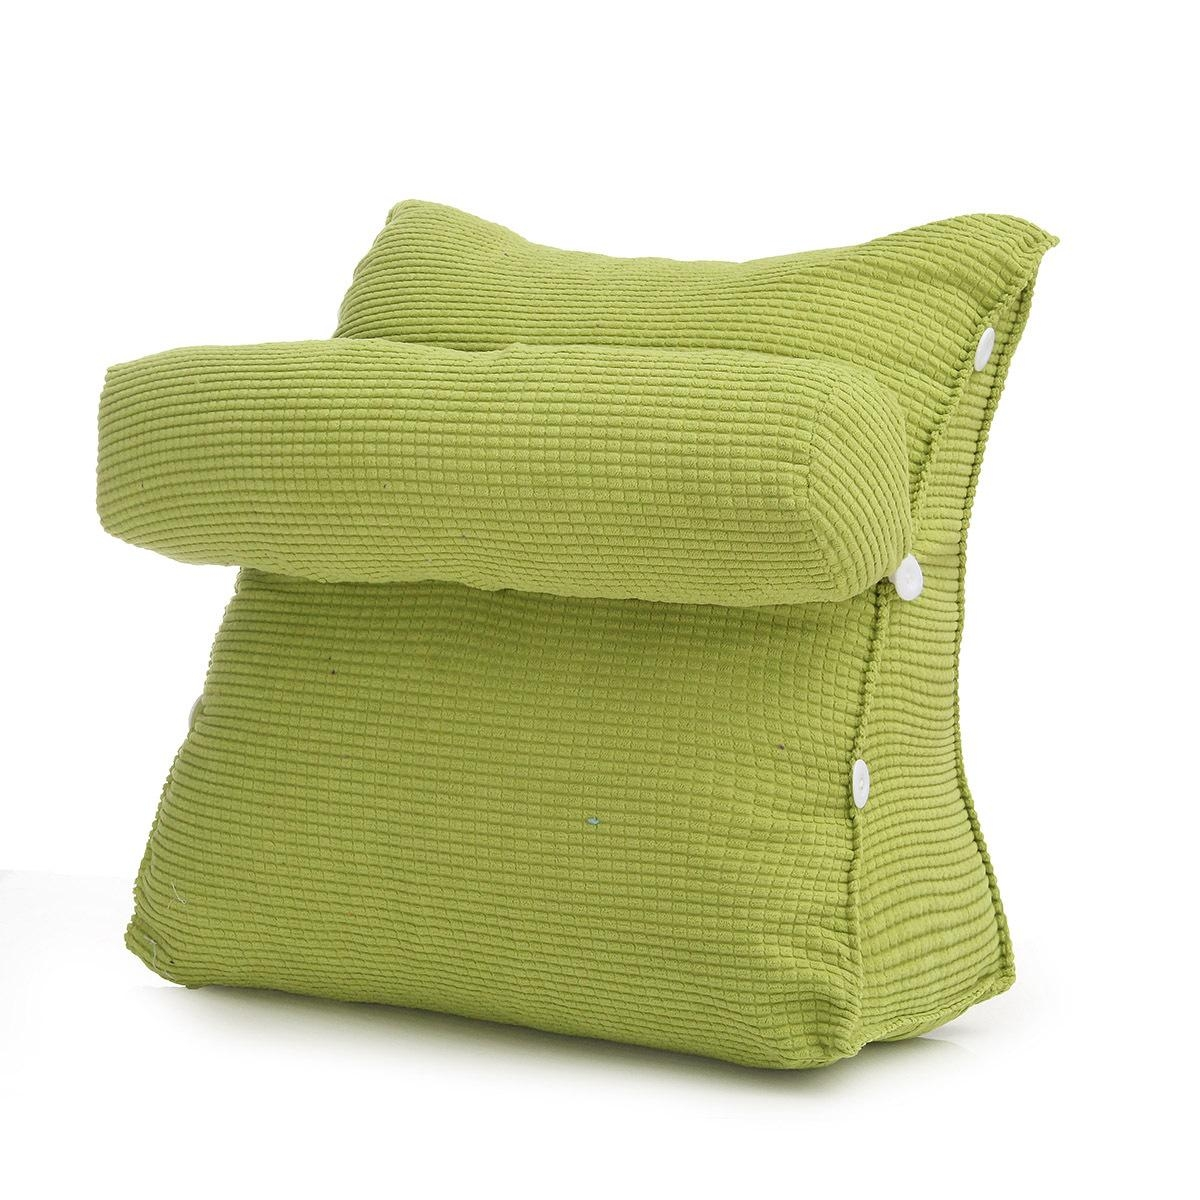 Sofa Bed Office Chair Cushion Adjustable Neck Support Back Wedge inside Cushion Sofa Beds